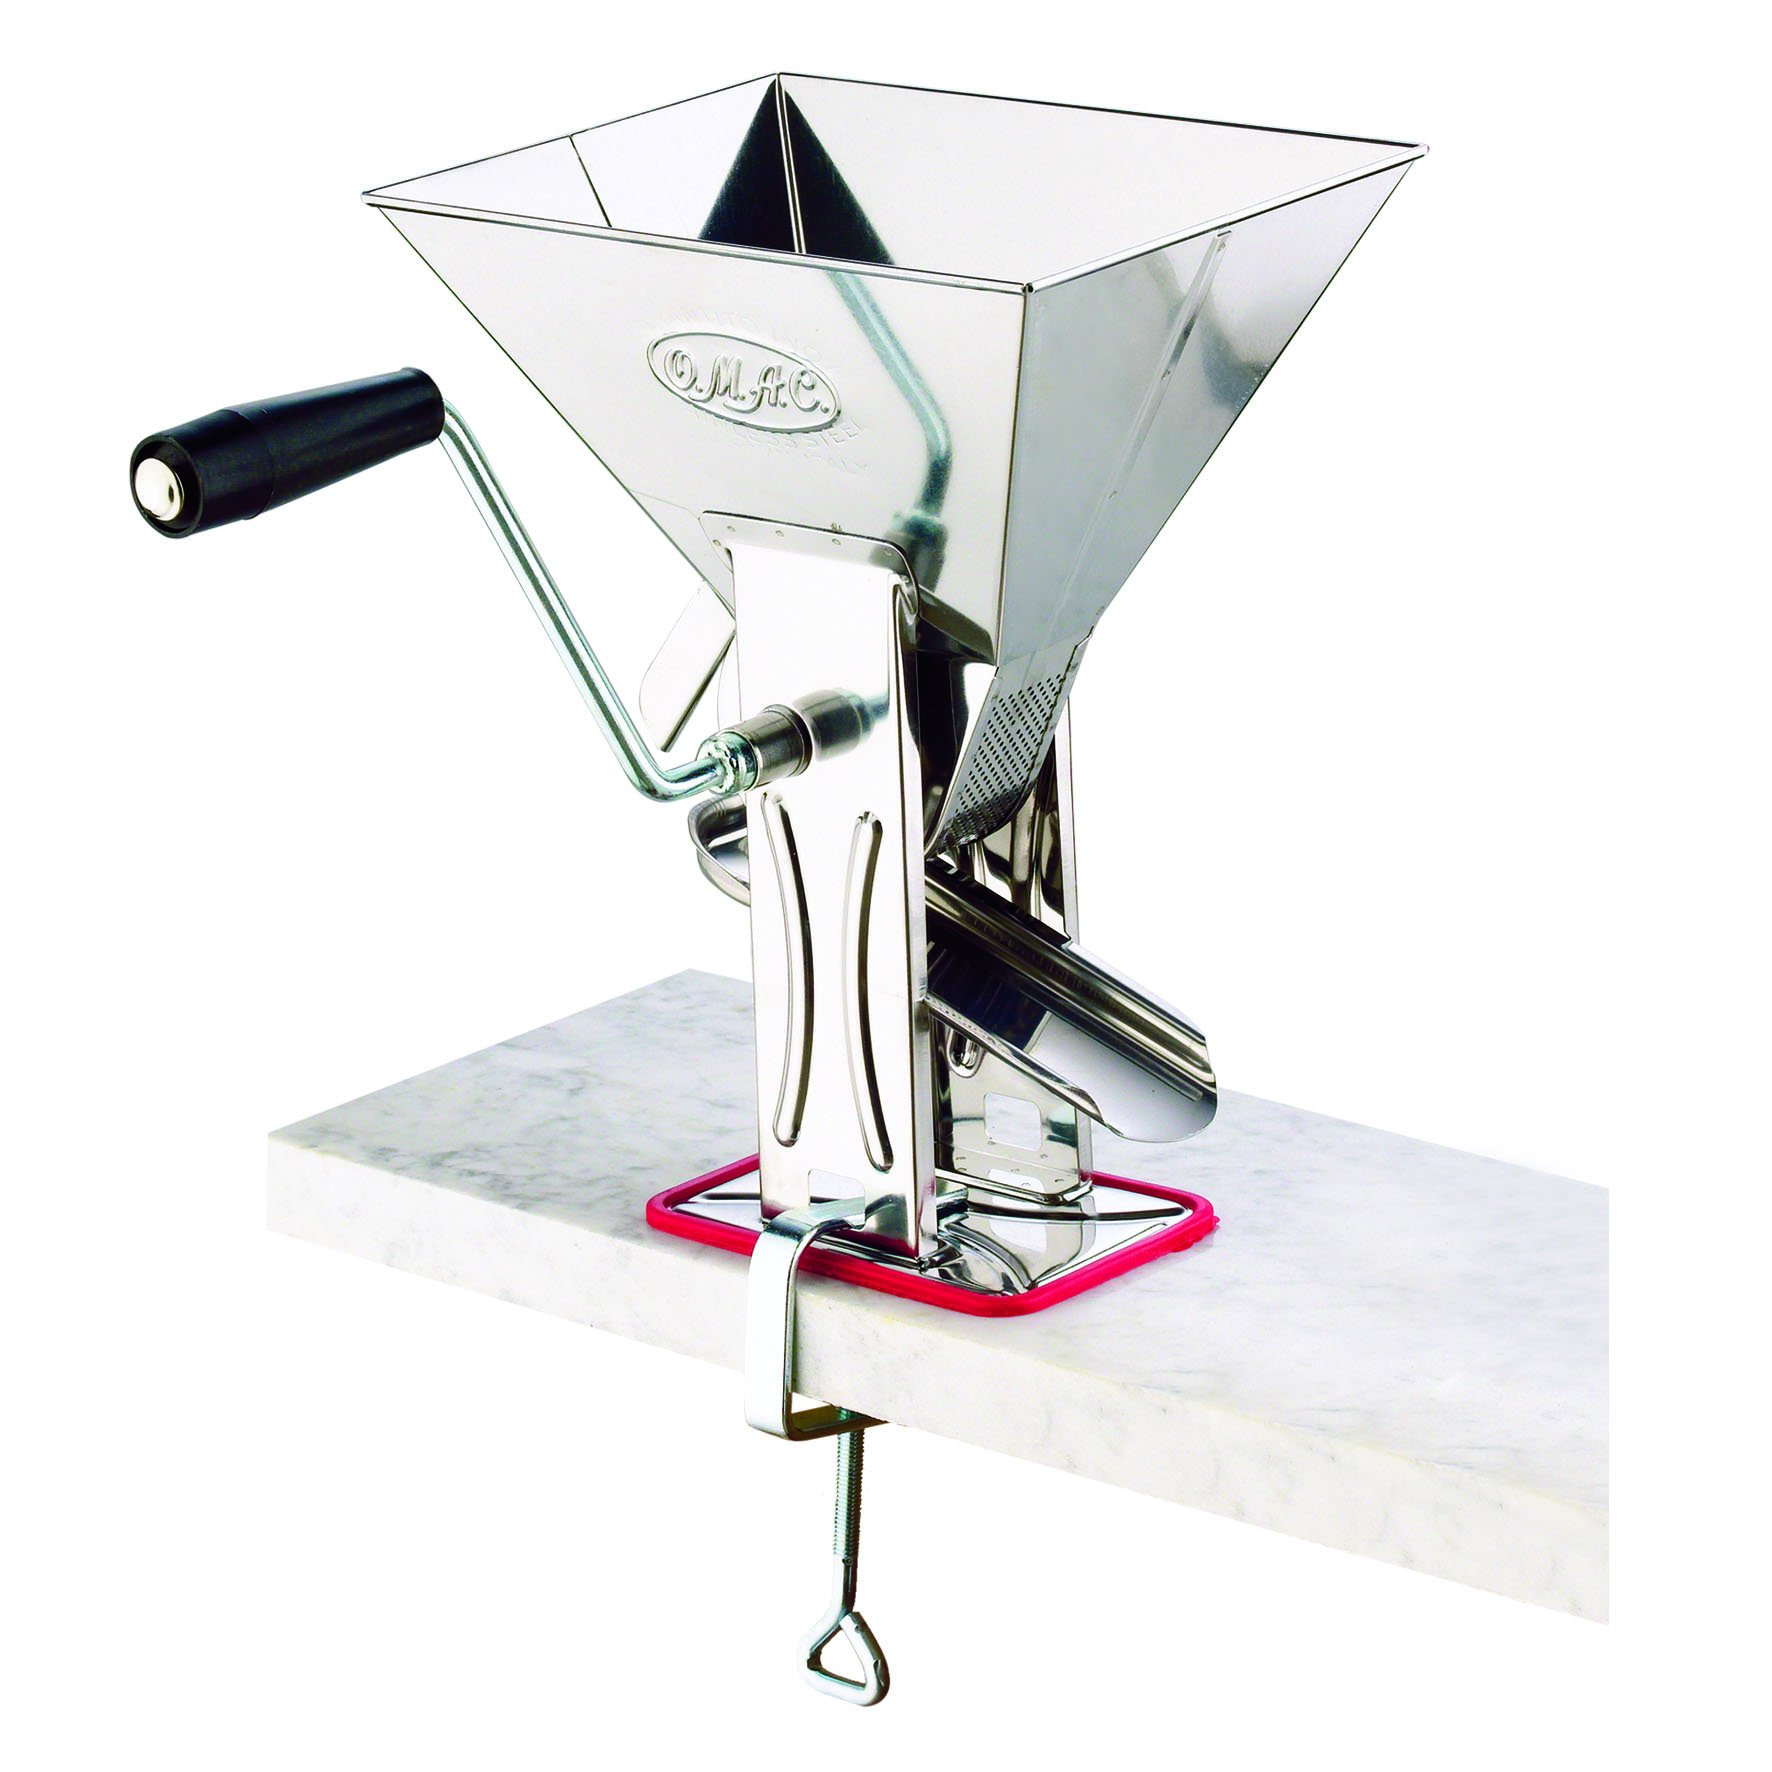 Tomato Mill Squeezer Masher Press Tomato Sauce Fruit Juice Maker Stainless Steel by O.M.A.C.